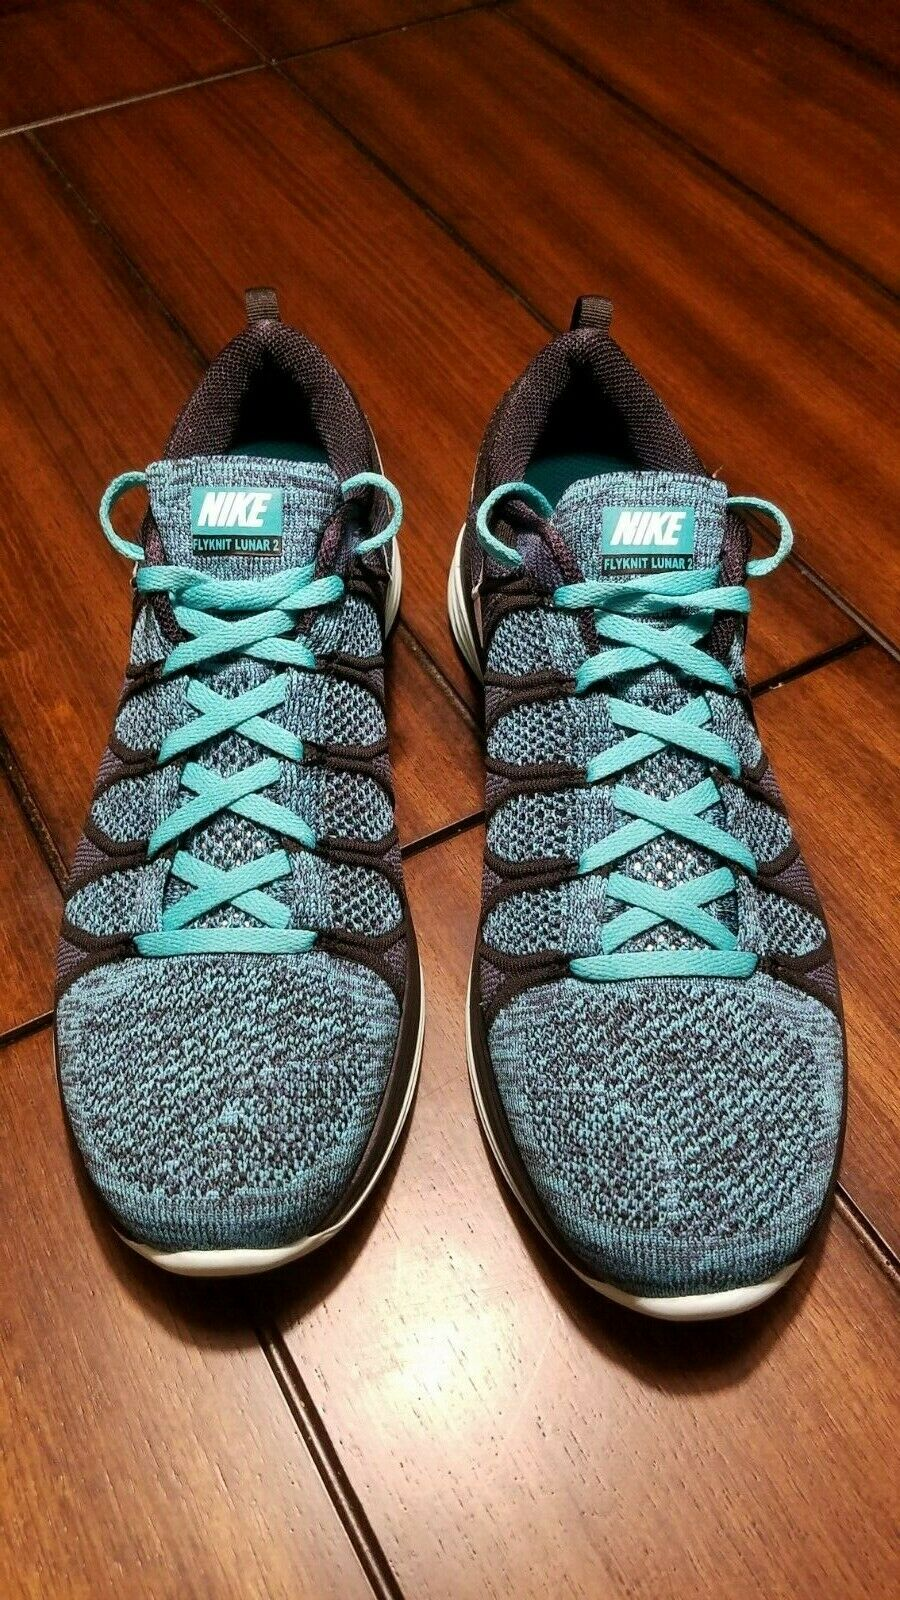 Nike Flyknit Lunar 2 Black Turquoise US 11 code 620465 004